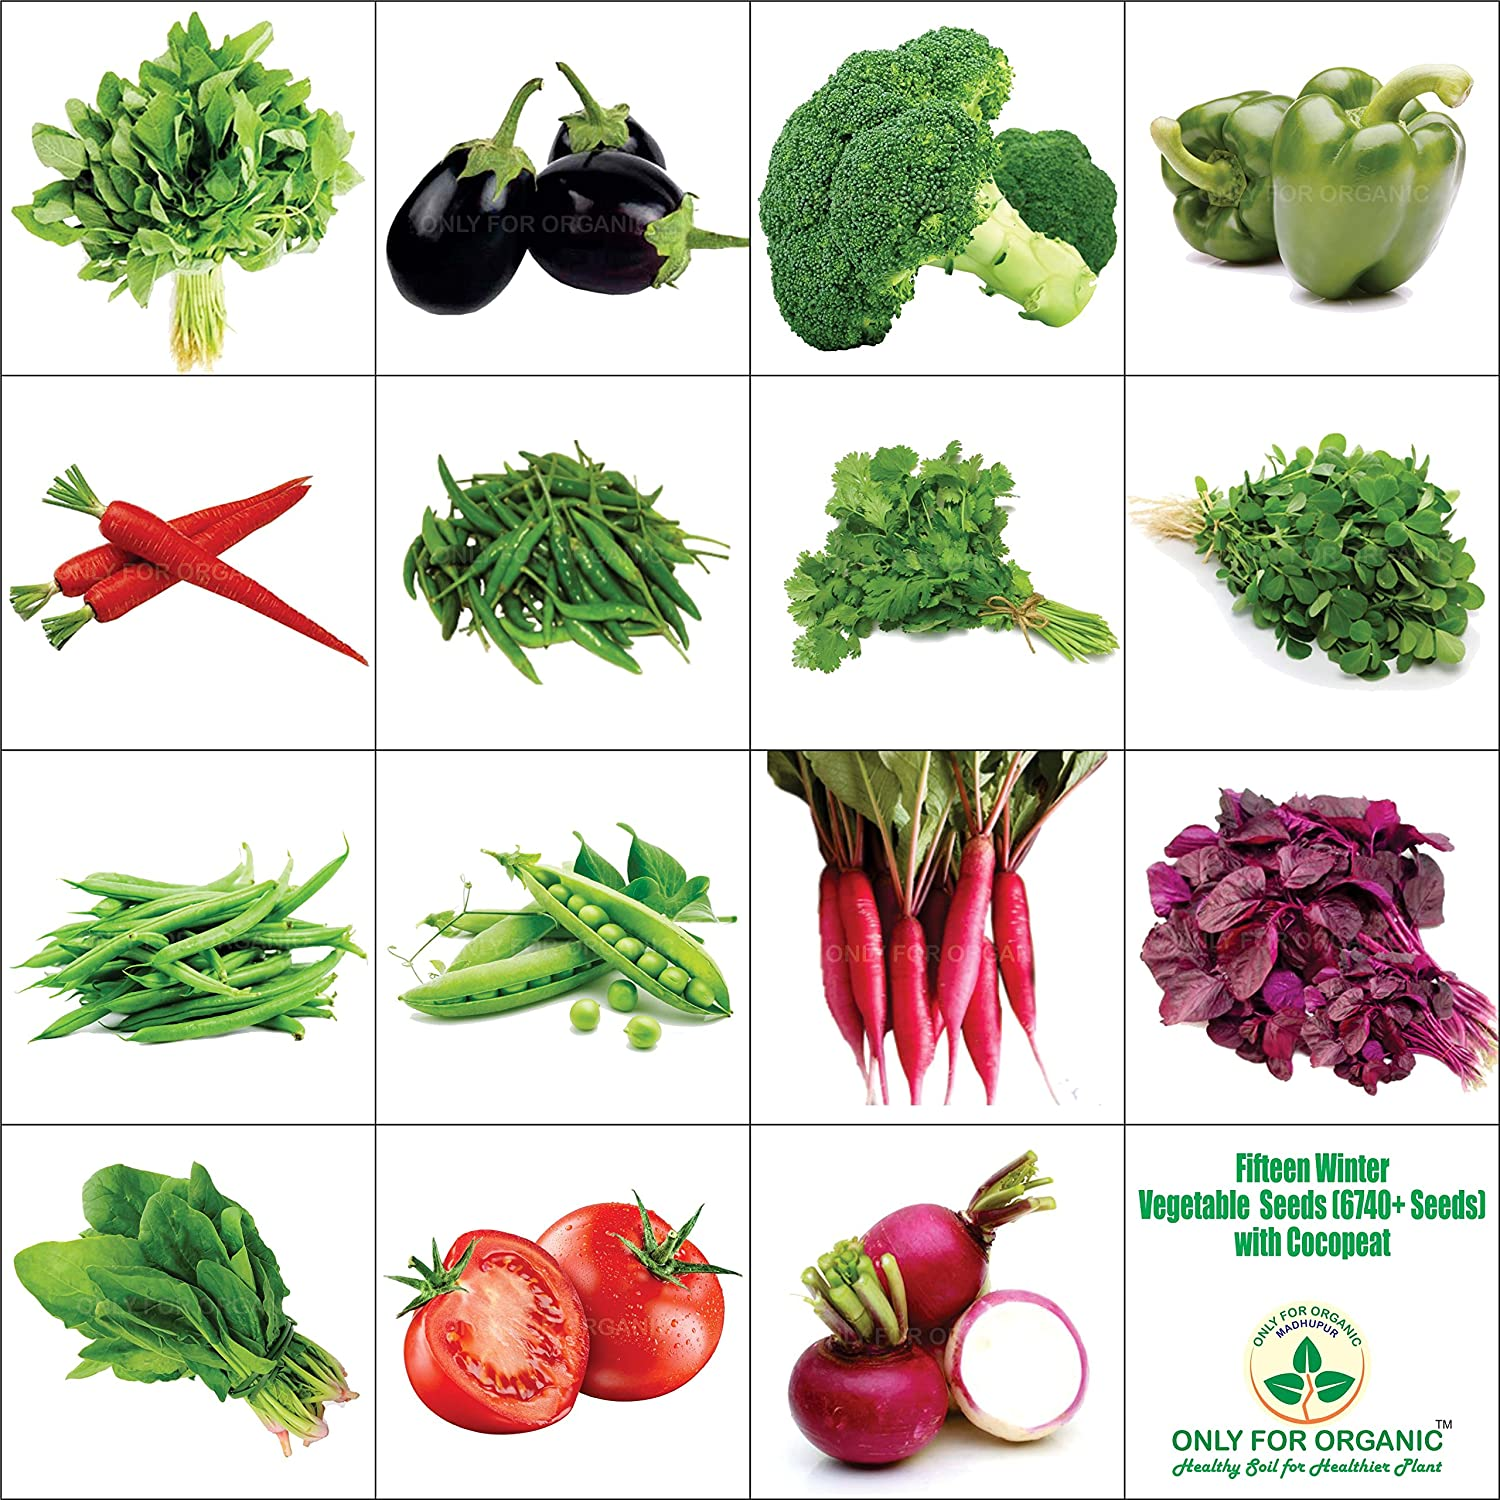 Only For Organic Fifteen Winter Vegetable Seeds(6700+